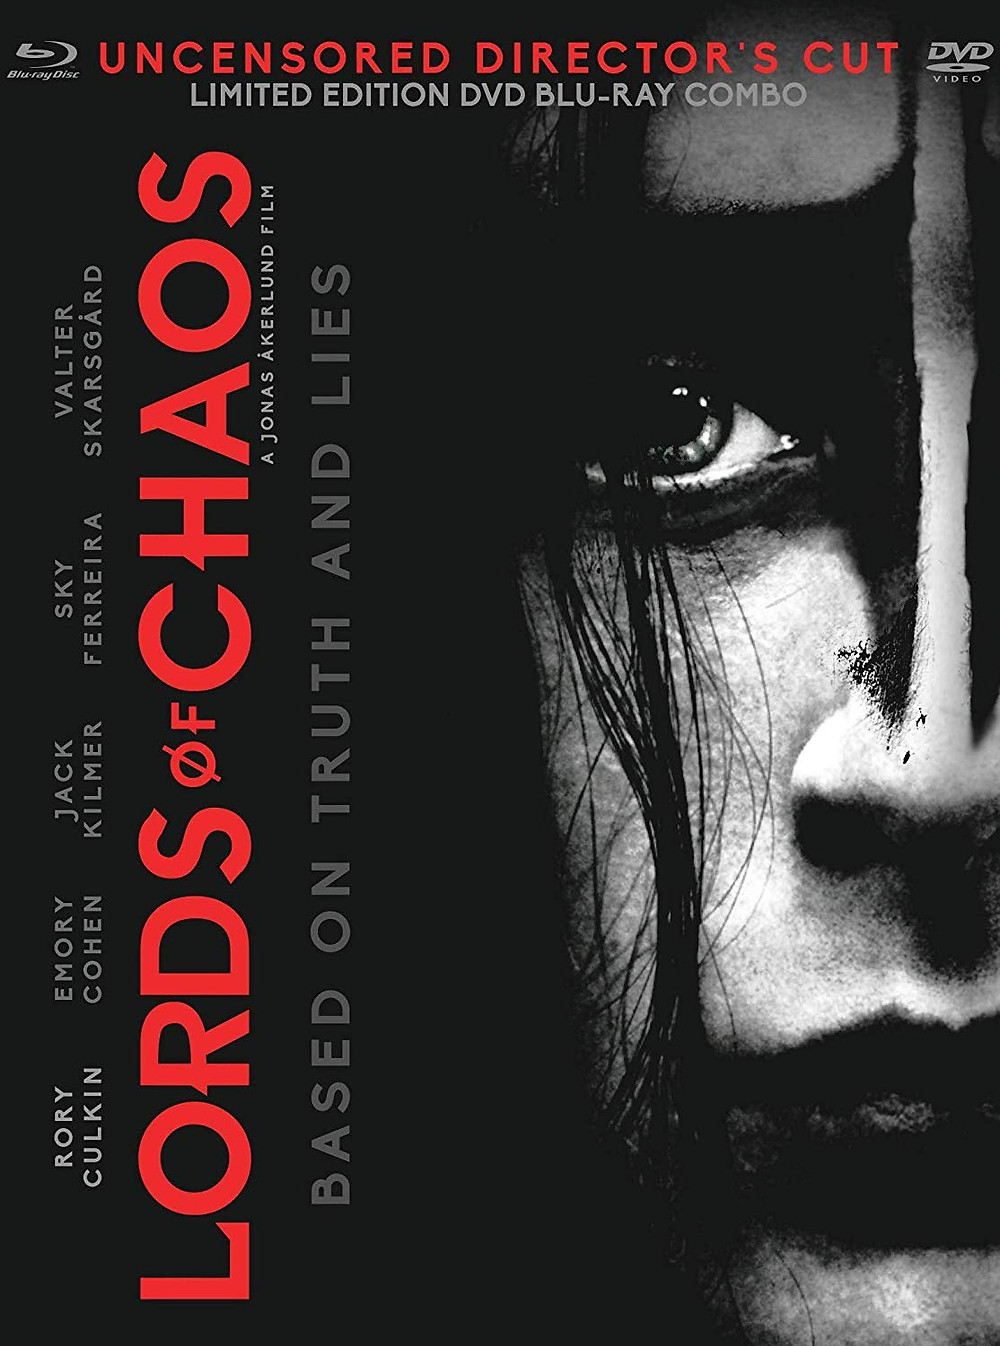 Lords of Chaos Blu-ray MVD Unobstructed View